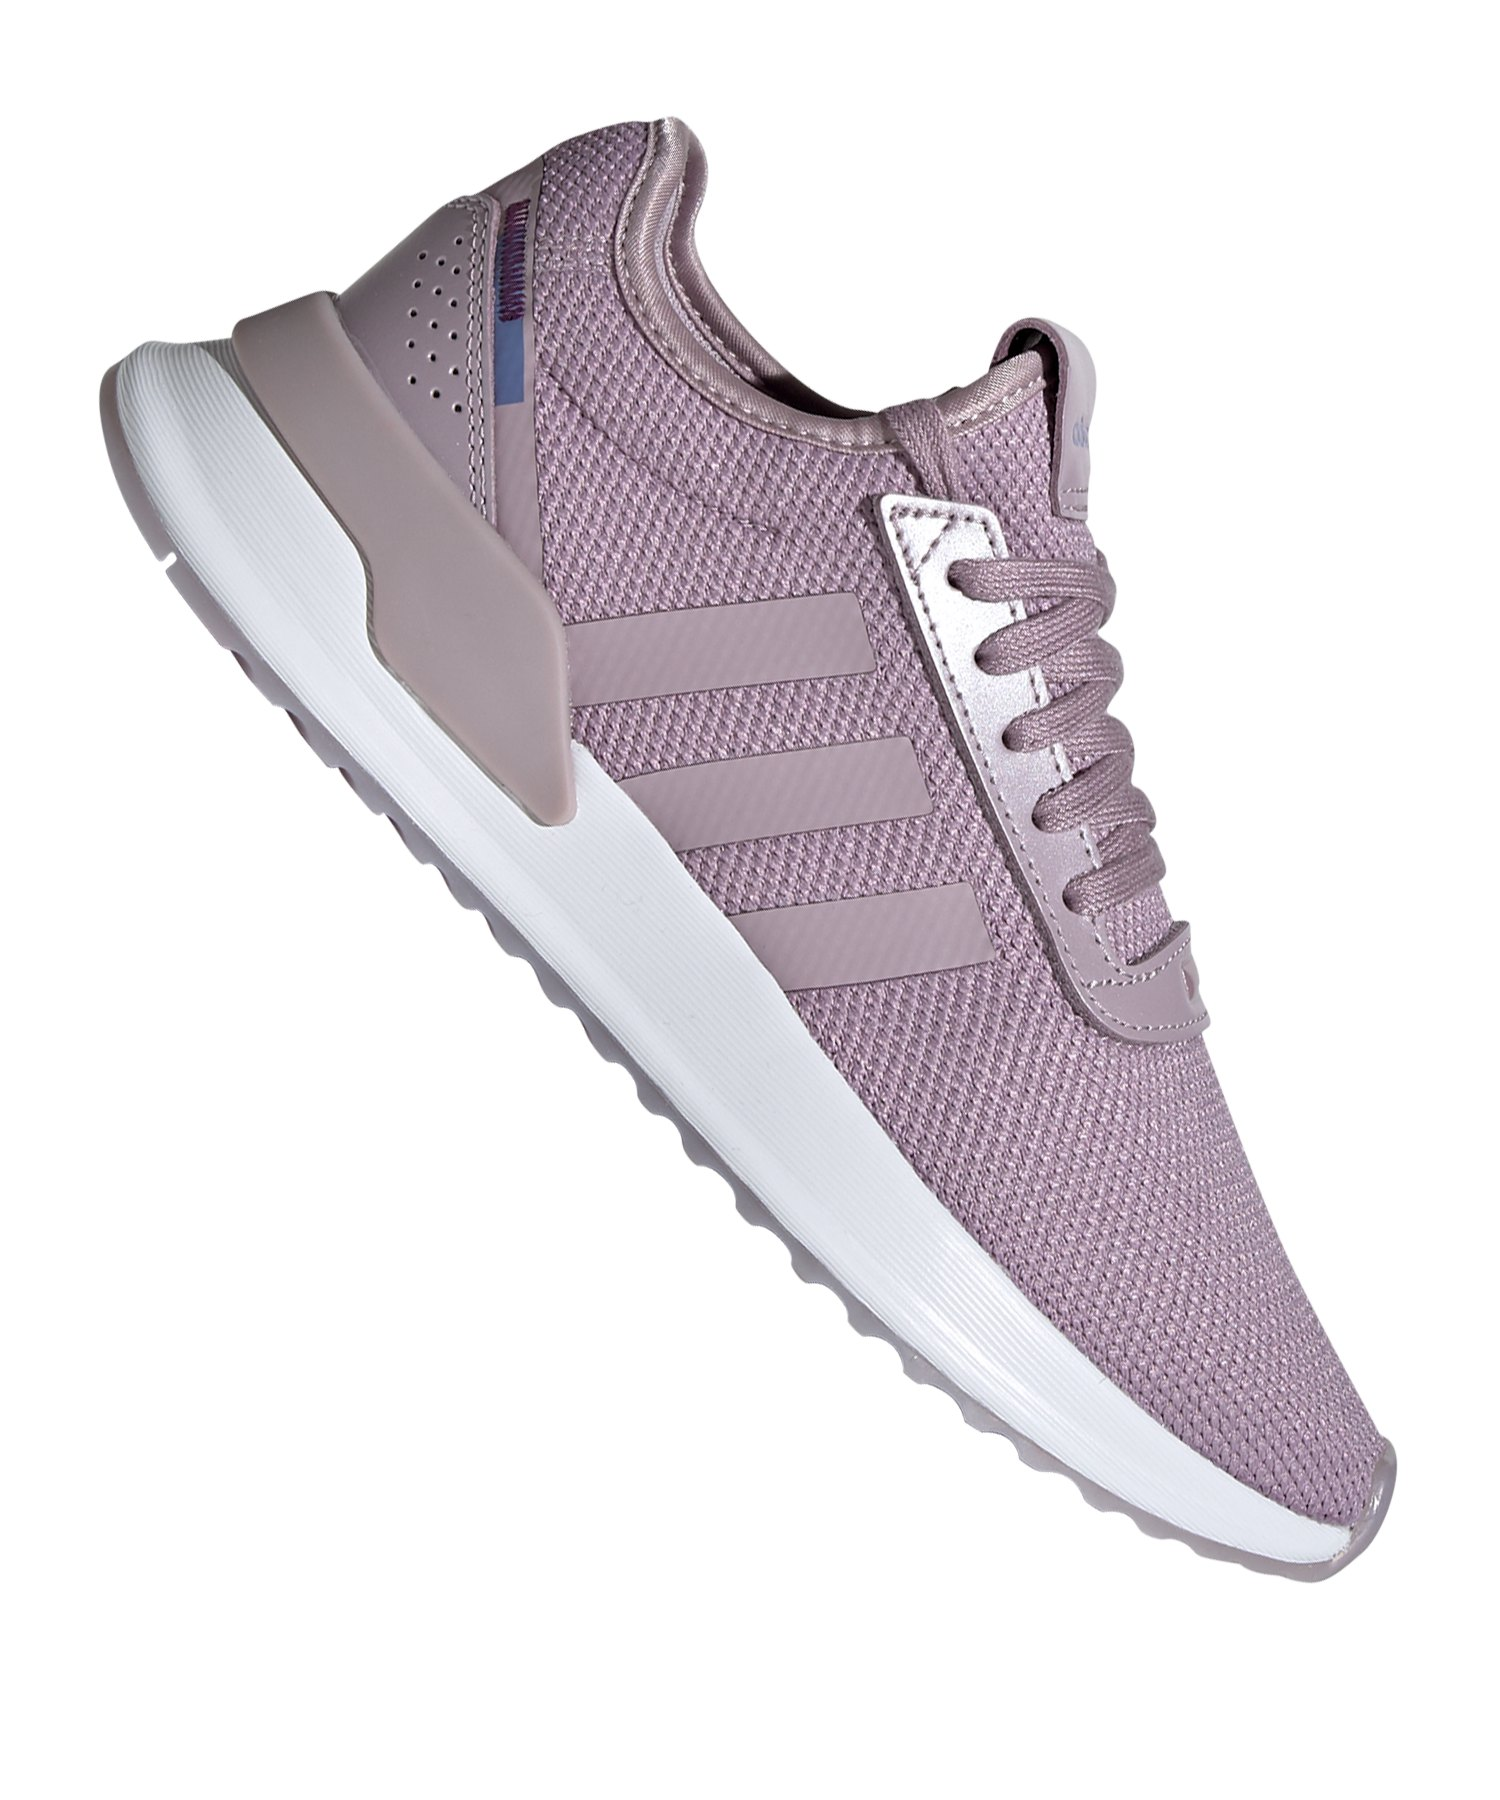 adidas Originals U_Path X Sneaker Damen Pink Weiss